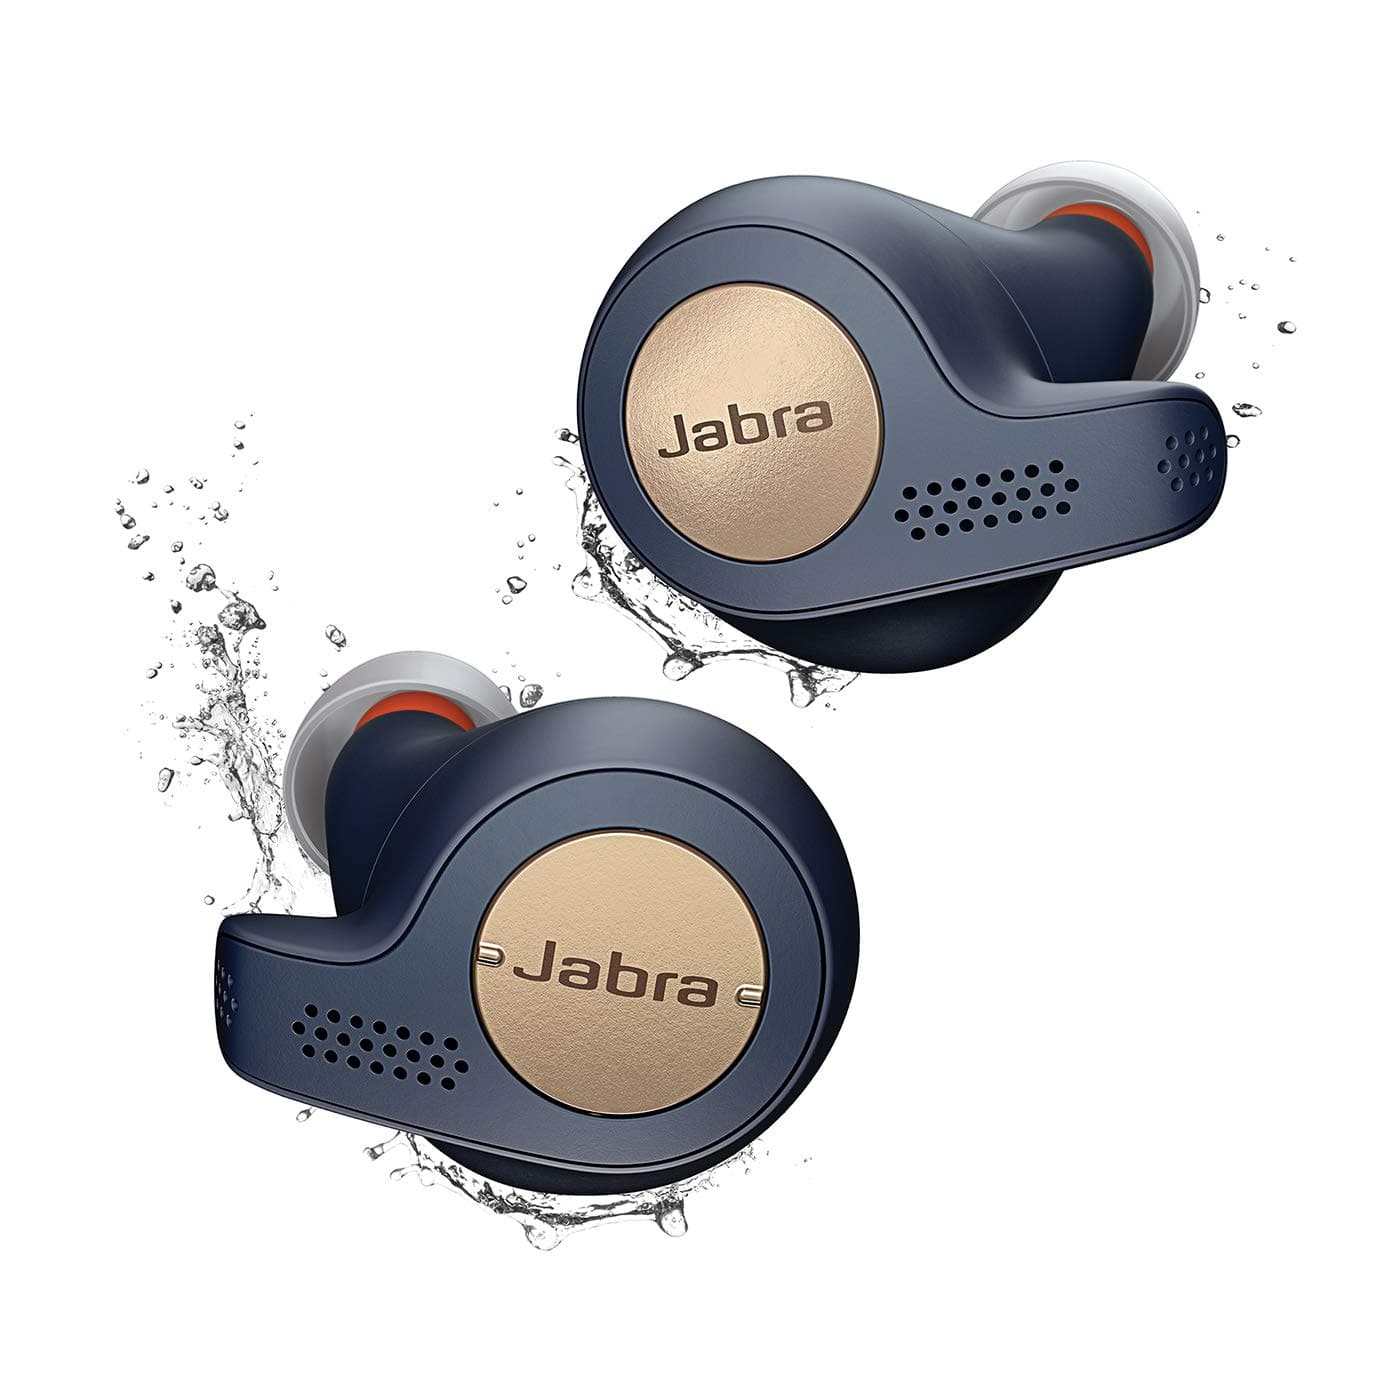 Jabra Elite Active 65t Alexa Enabled True Wireless Sports Earbuds Copper Blue $128 + tax AR (Amazon Prime Card Required)